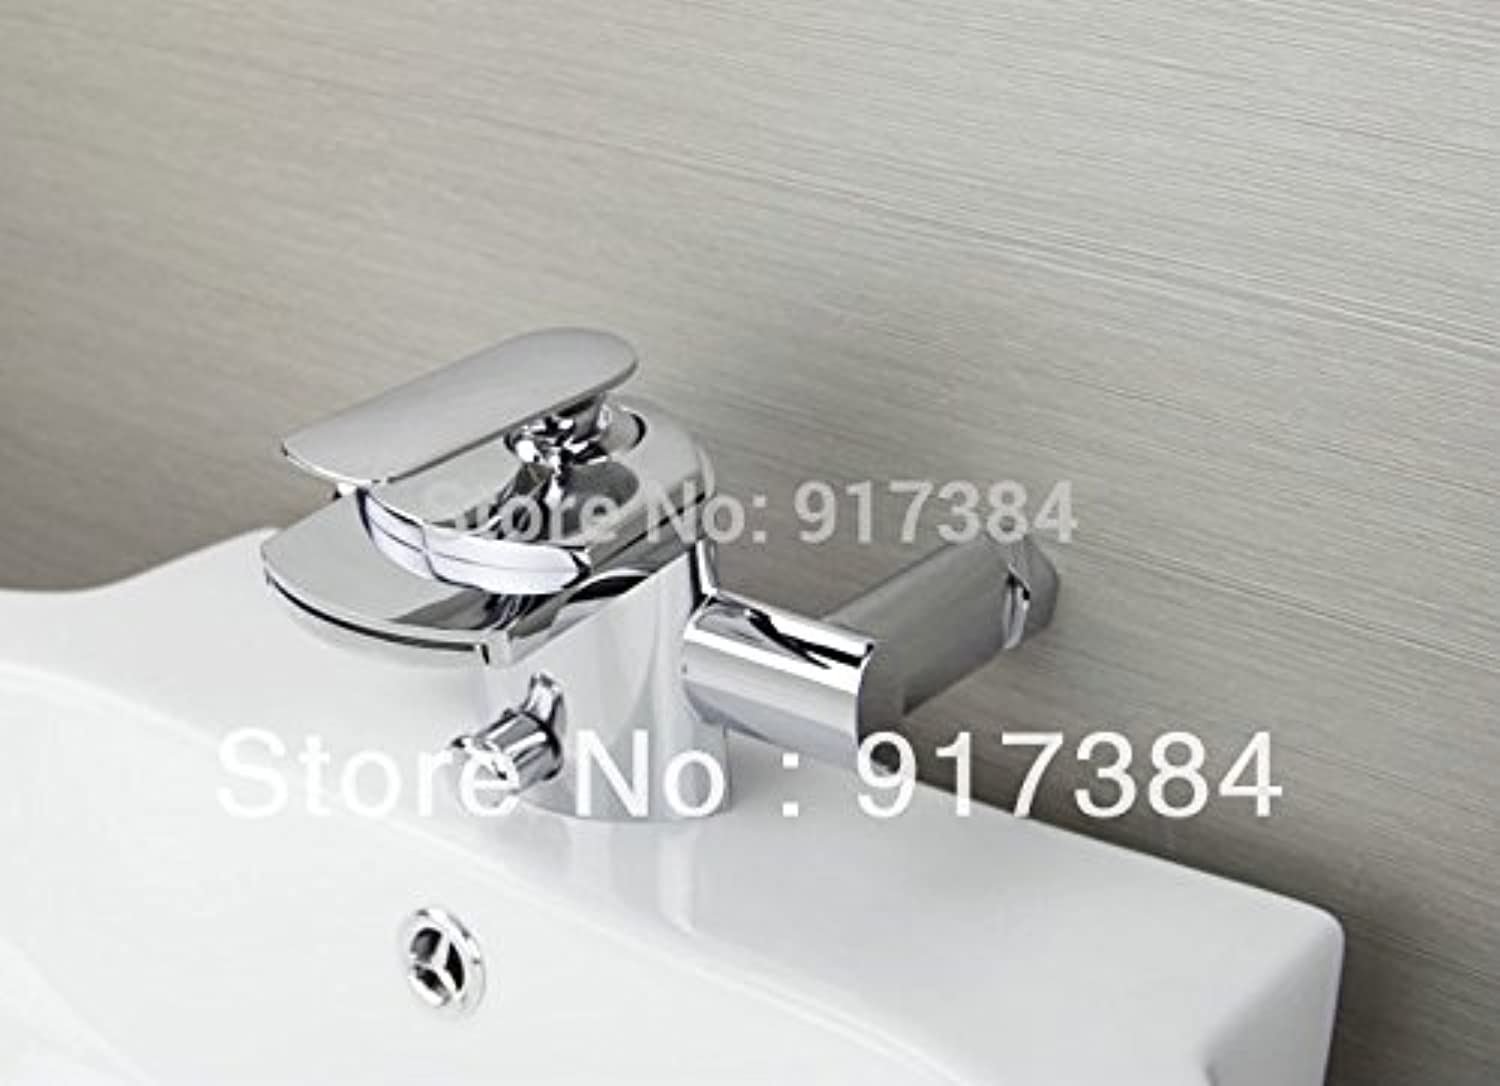 U-Enjoy New Waterfall Wall Top Quality Mounted Bathtub with Hand Home Bathroom Kitchen Shower Mixer Tap Faucet (Free Shipping)